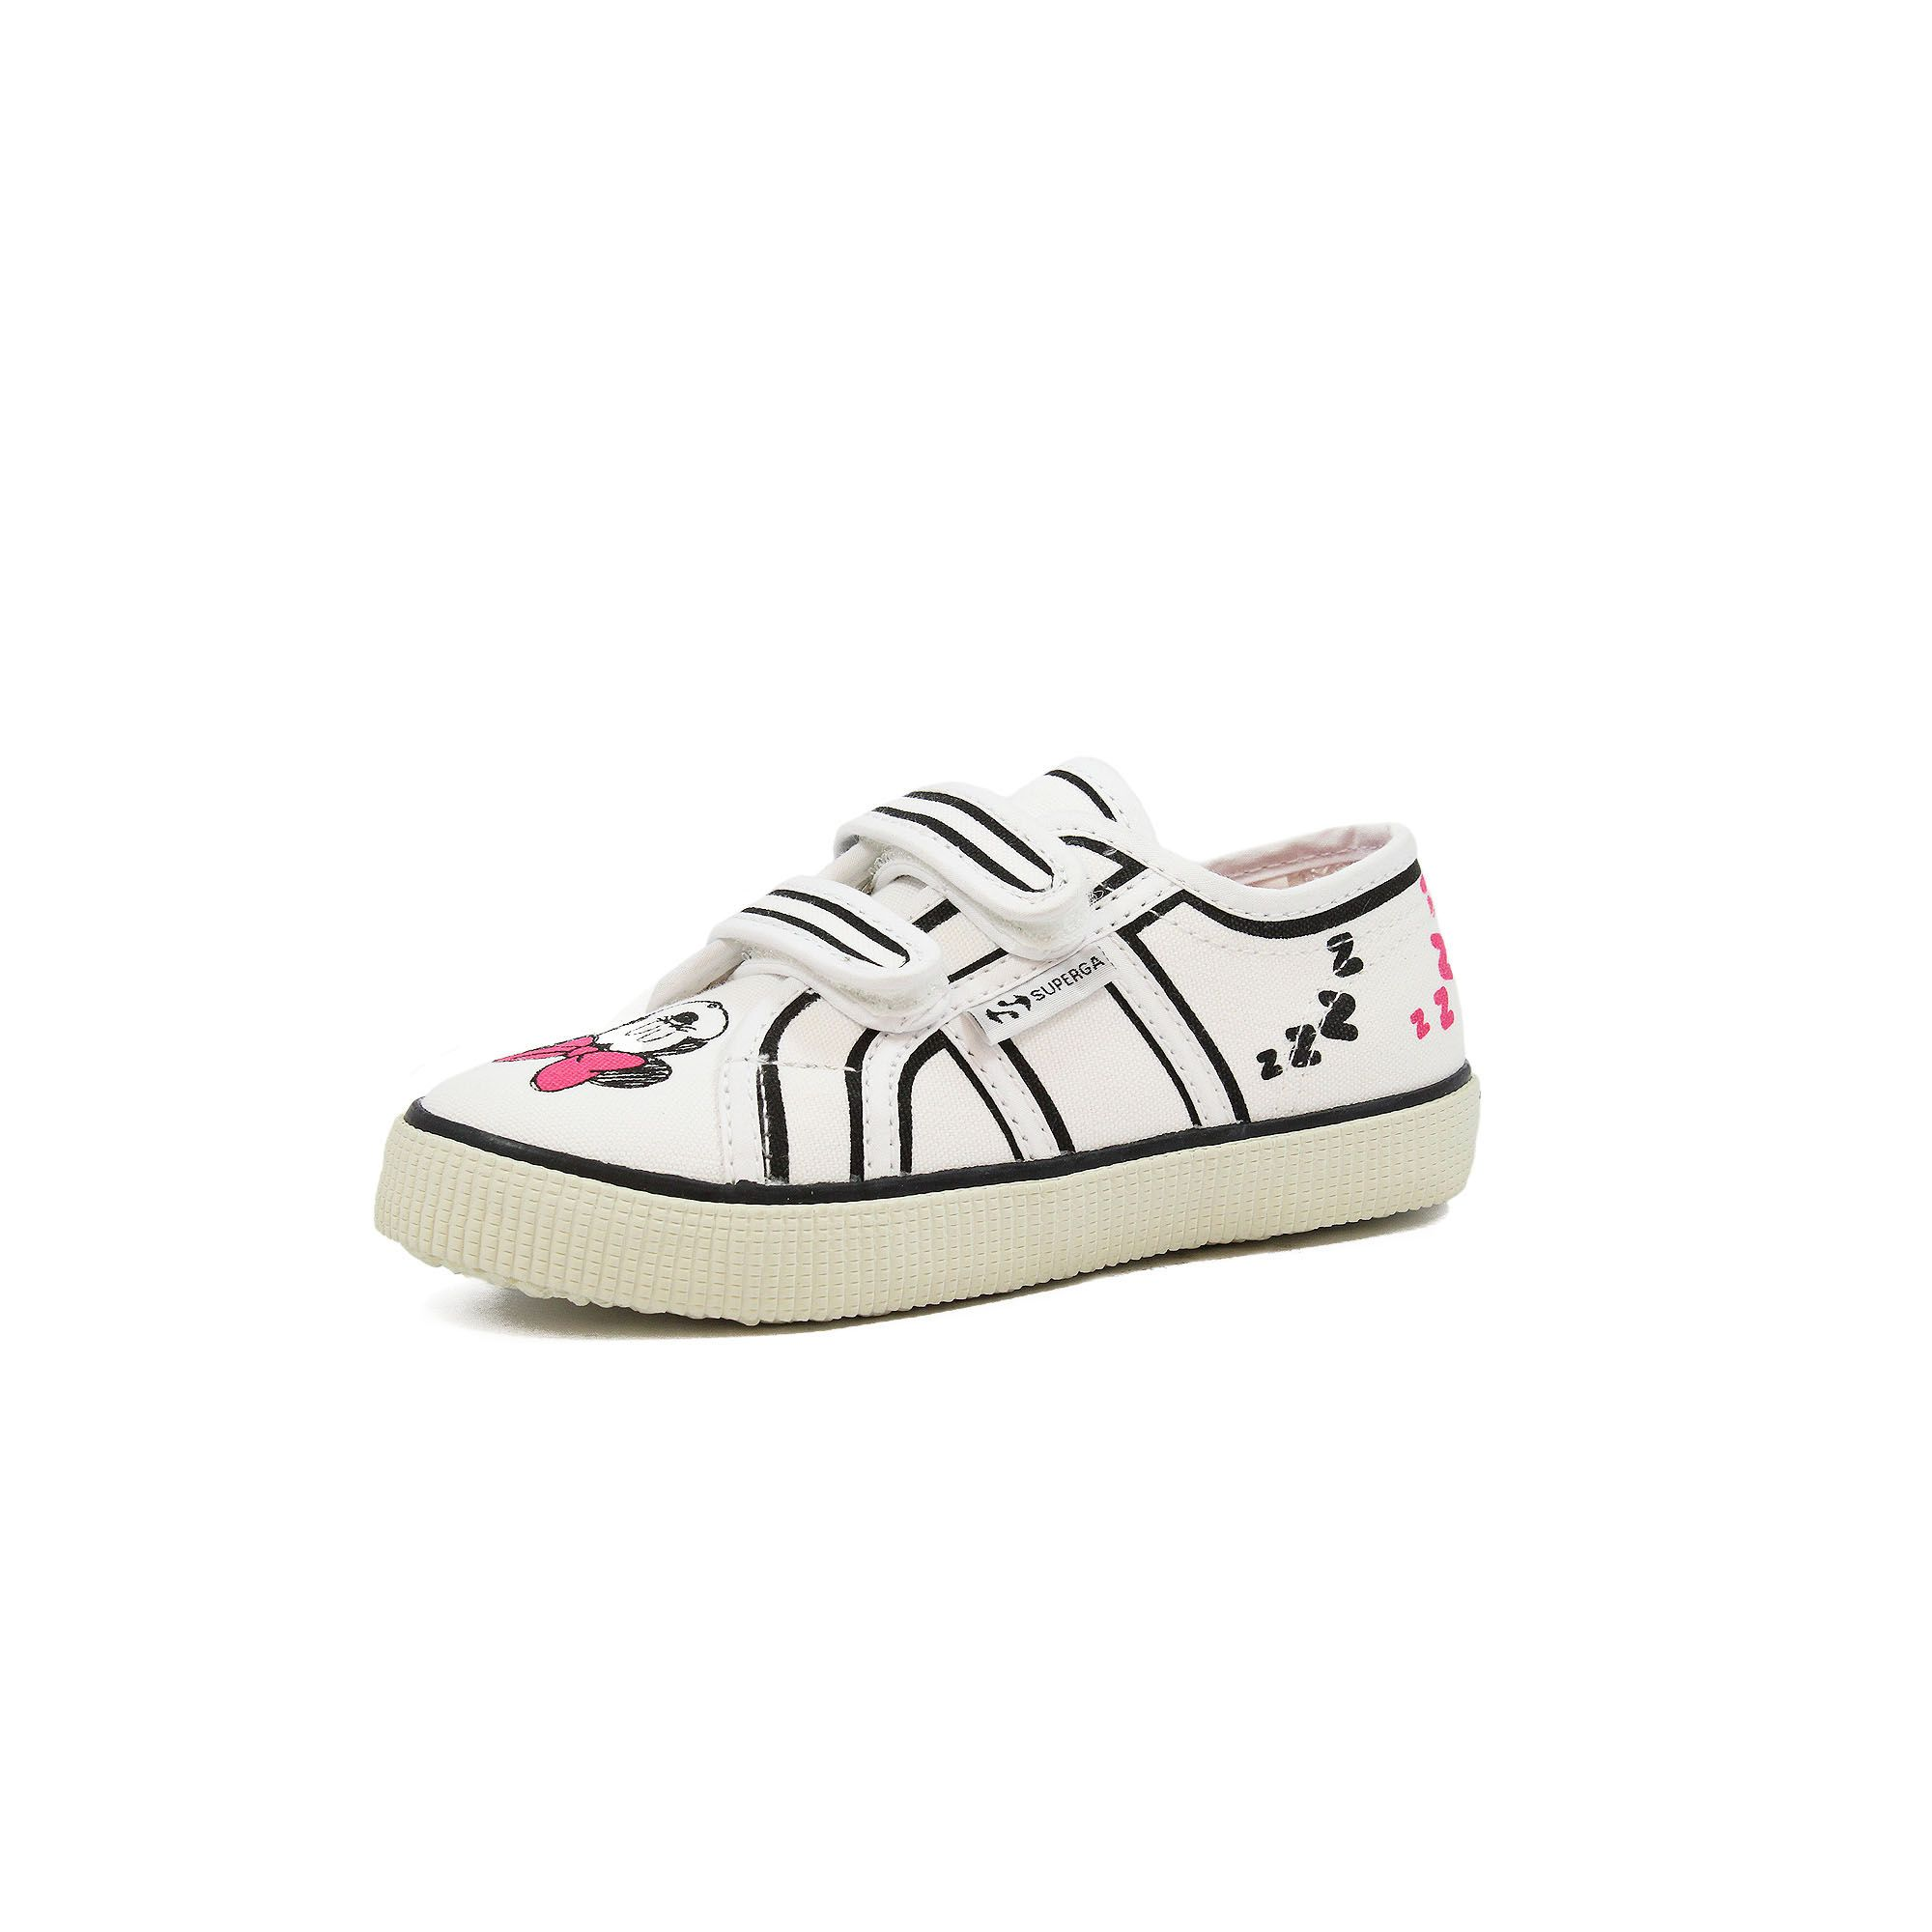 2750 CARTOON  STRAPCOTJ WHITE - FUCHSIA